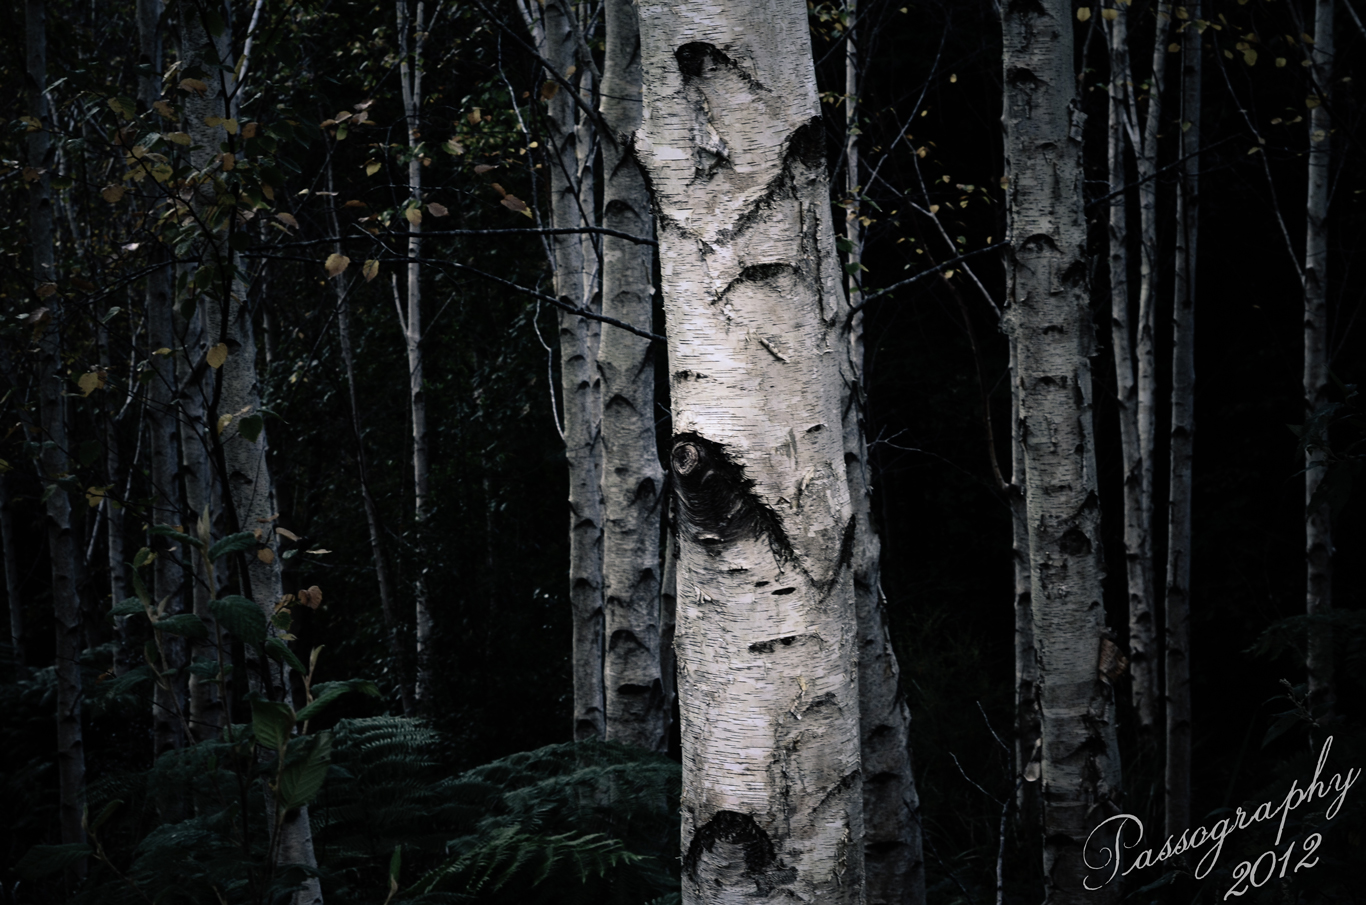 dark places forest trees - photo #21